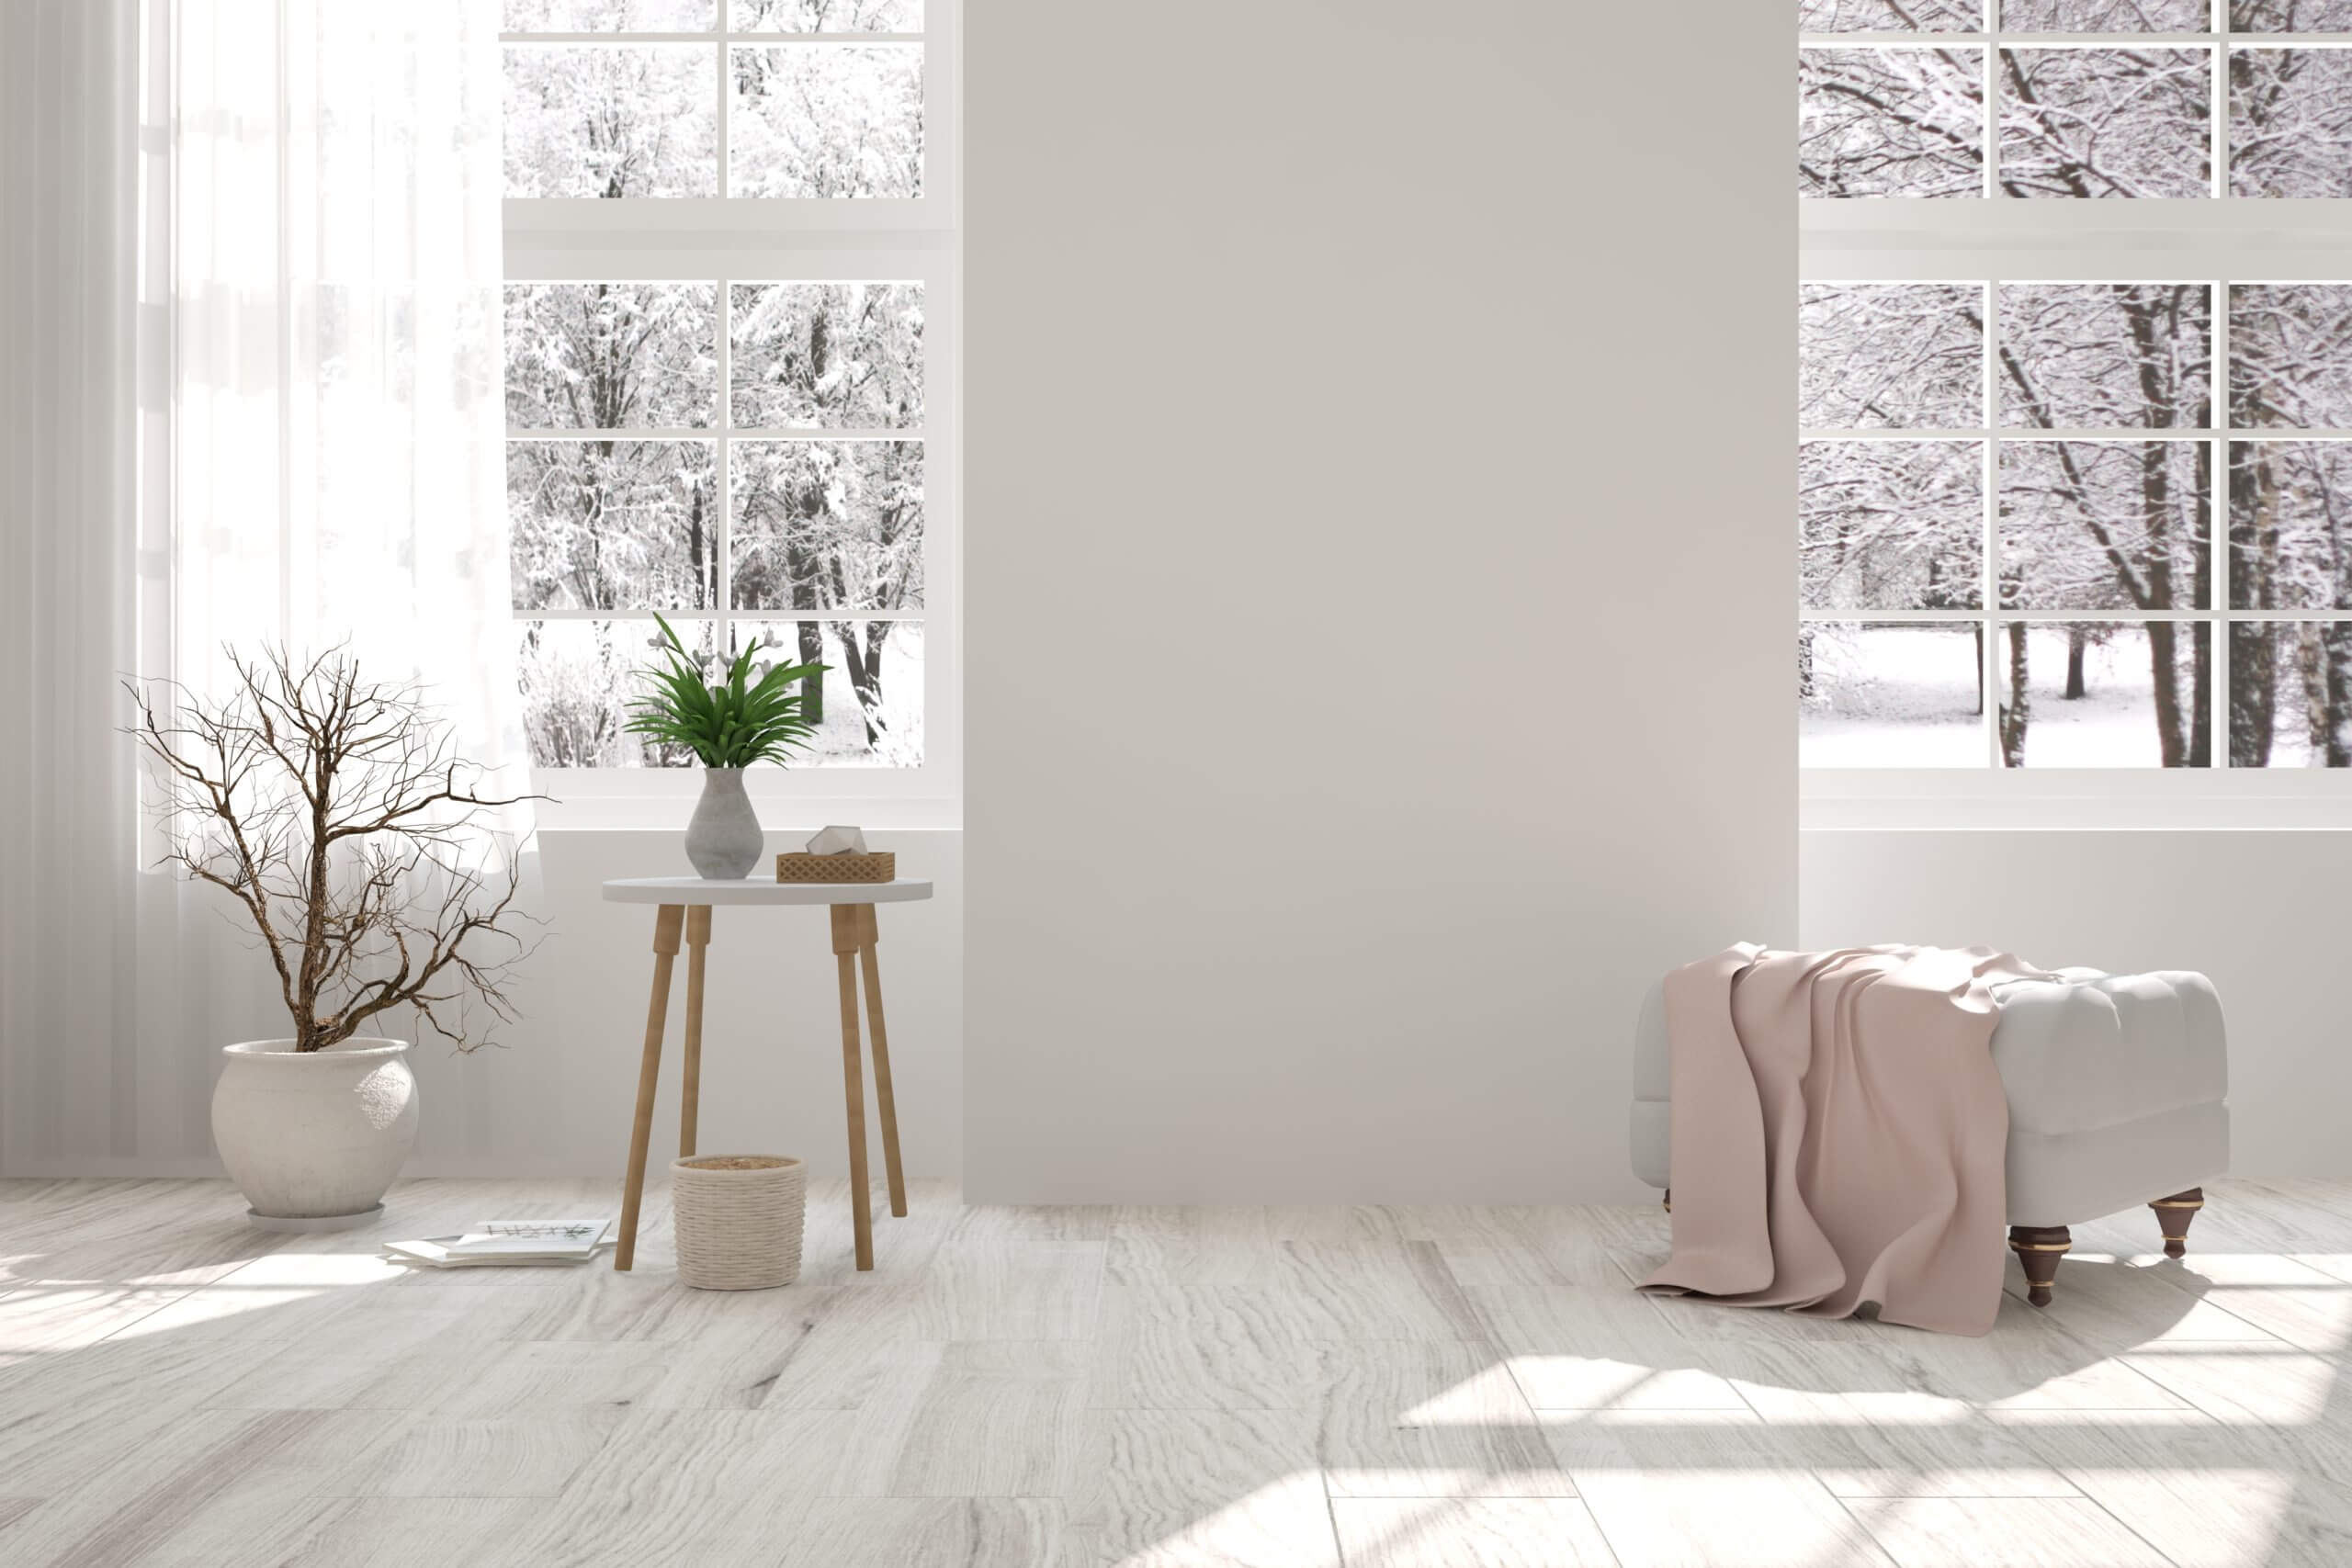 Benefits of humidifiers in winter